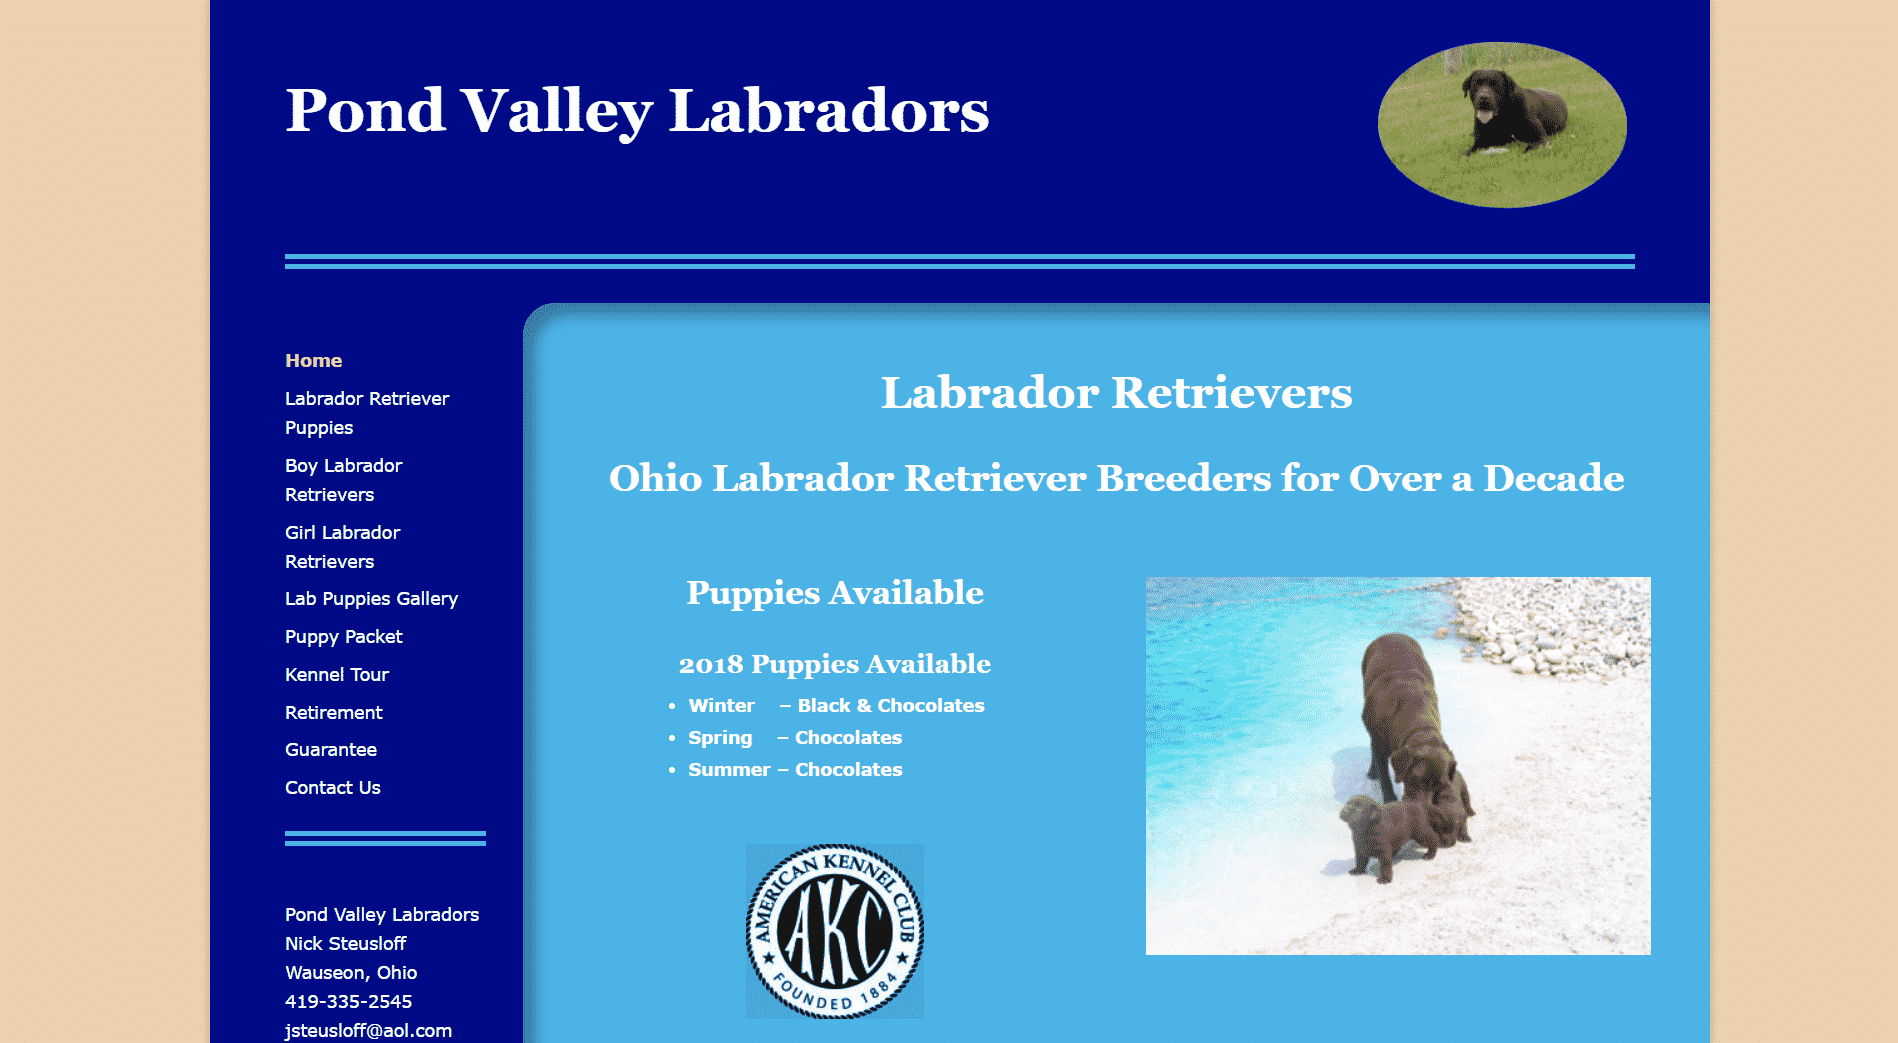 Pond Valley Labradors Ohio Labrador Retriever Breeders for Nearly 2 Decades website image